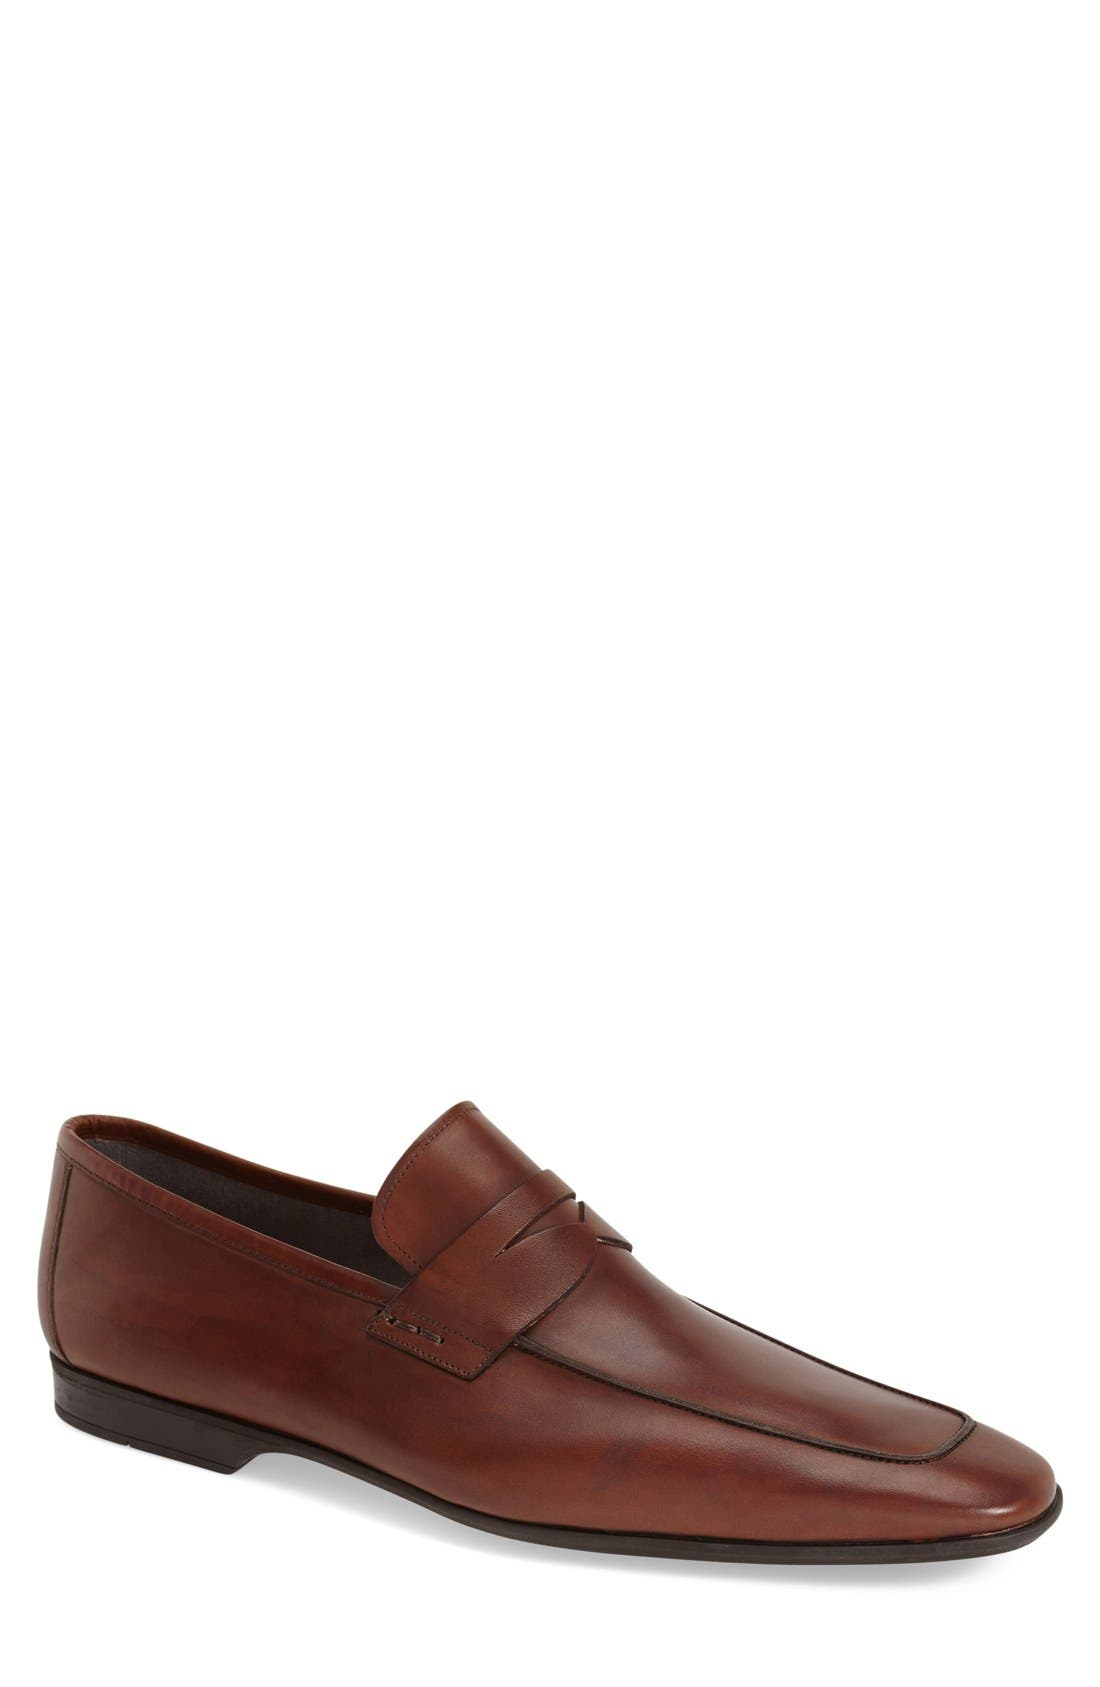 Alternate Image 1 Selected - Magnanni 'Ramiro' Penny Loafer (Men)